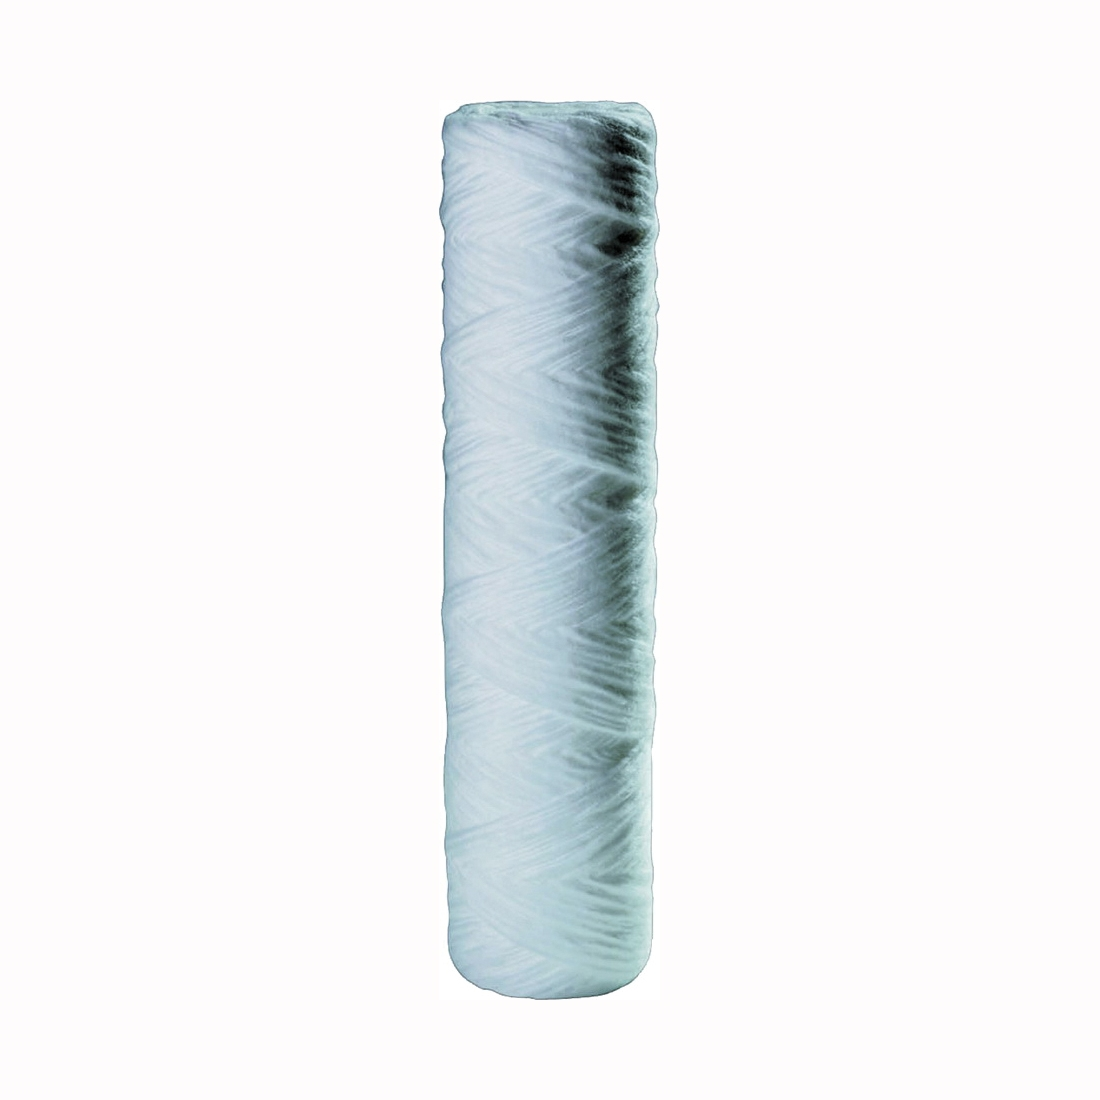 Picture of Pentair OMNIFilter RS2-DS12-S18 Filter Cartridge, 5 um Filter, String Wound Filter Media